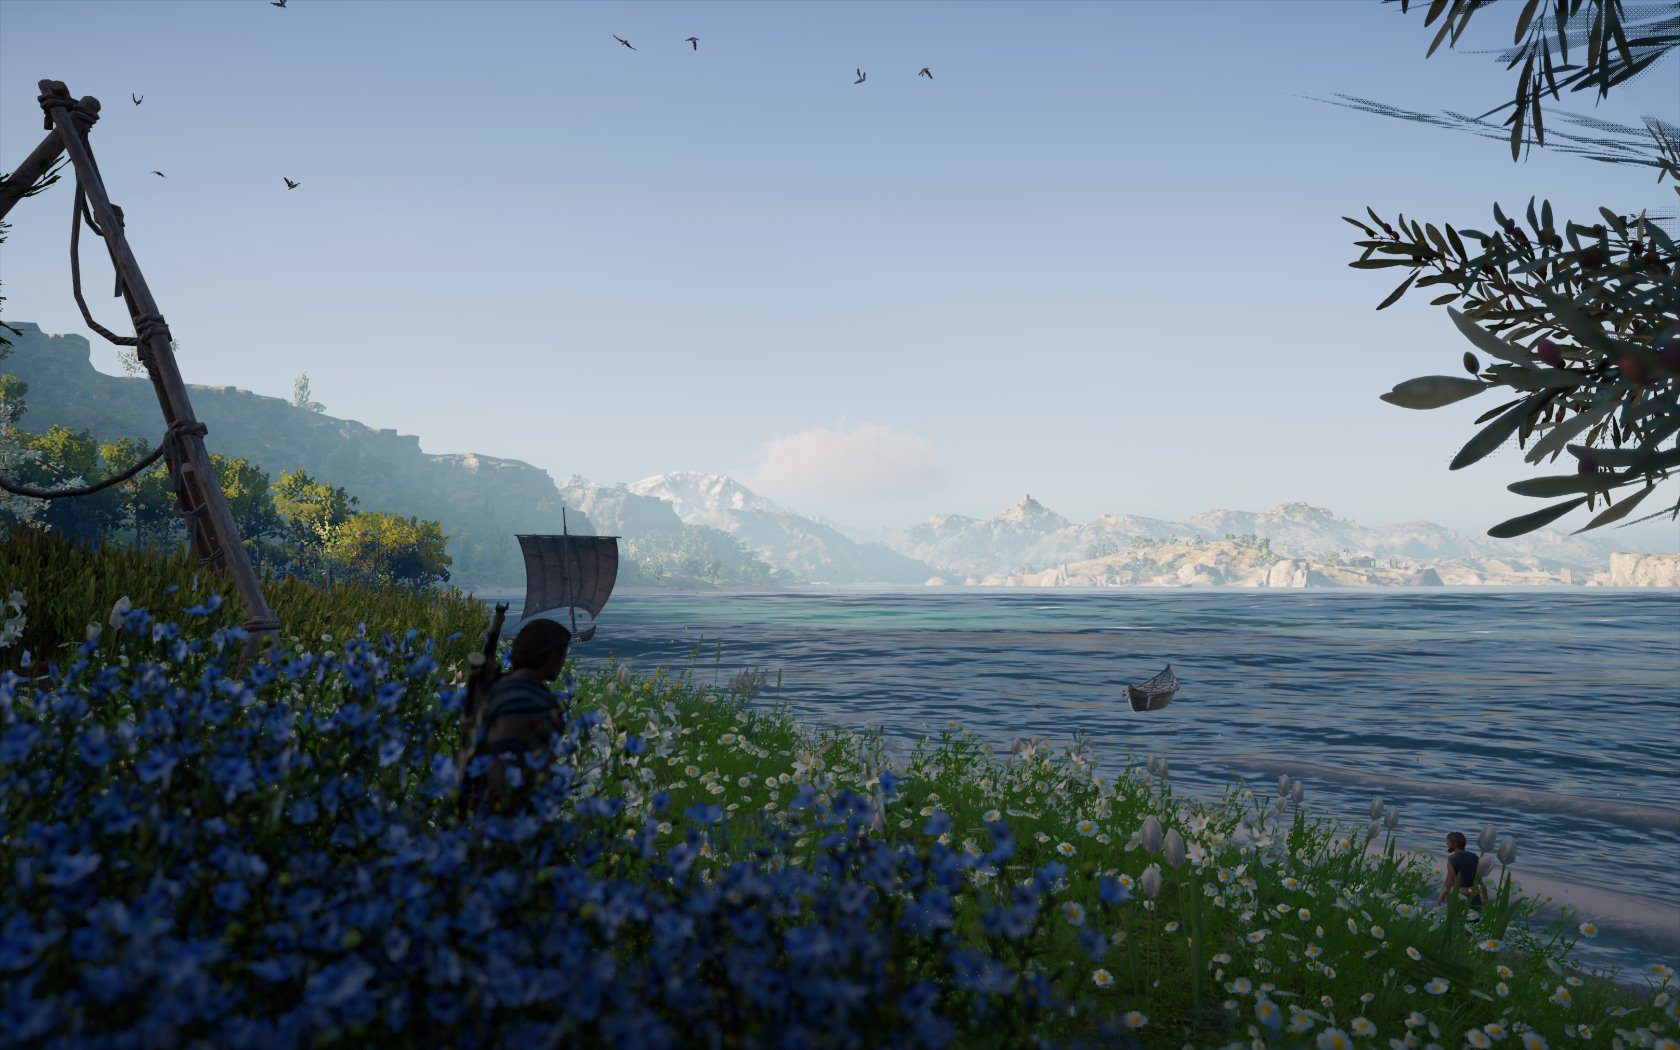 Assassin's Creed: Odyssey - Assassin's Creed: Odyssey